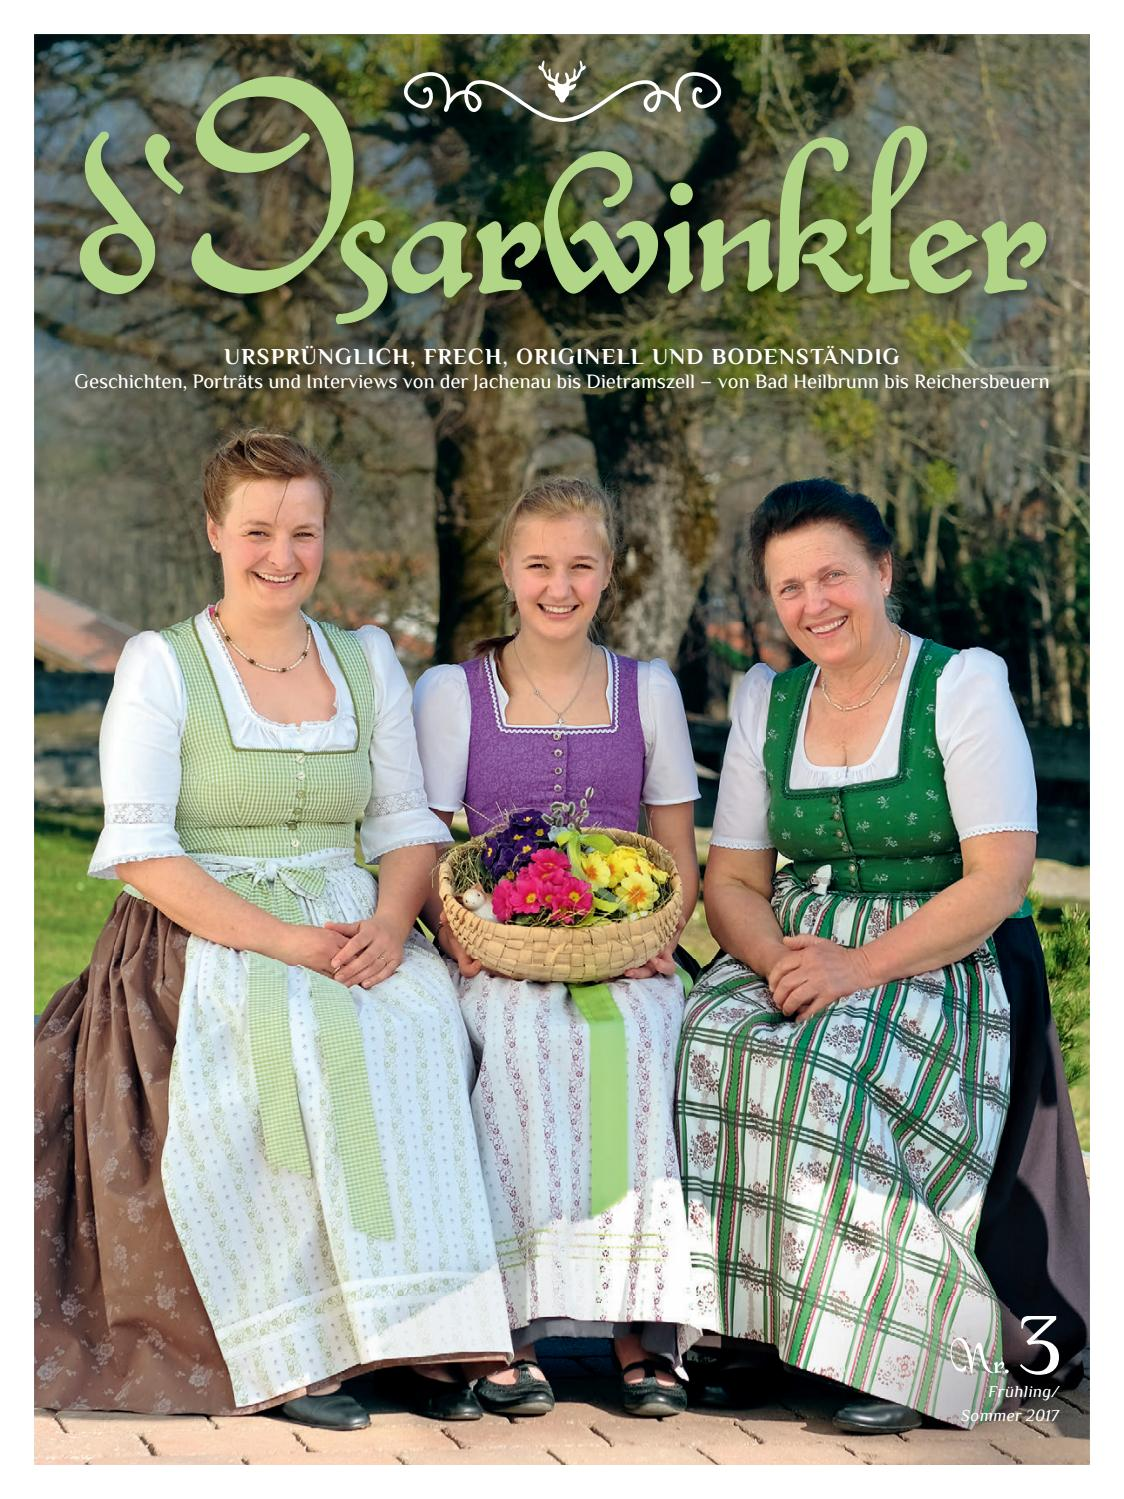 Keramik Bad Heilbrunn D Isarwinkler 3 By Monika Graf Issuu